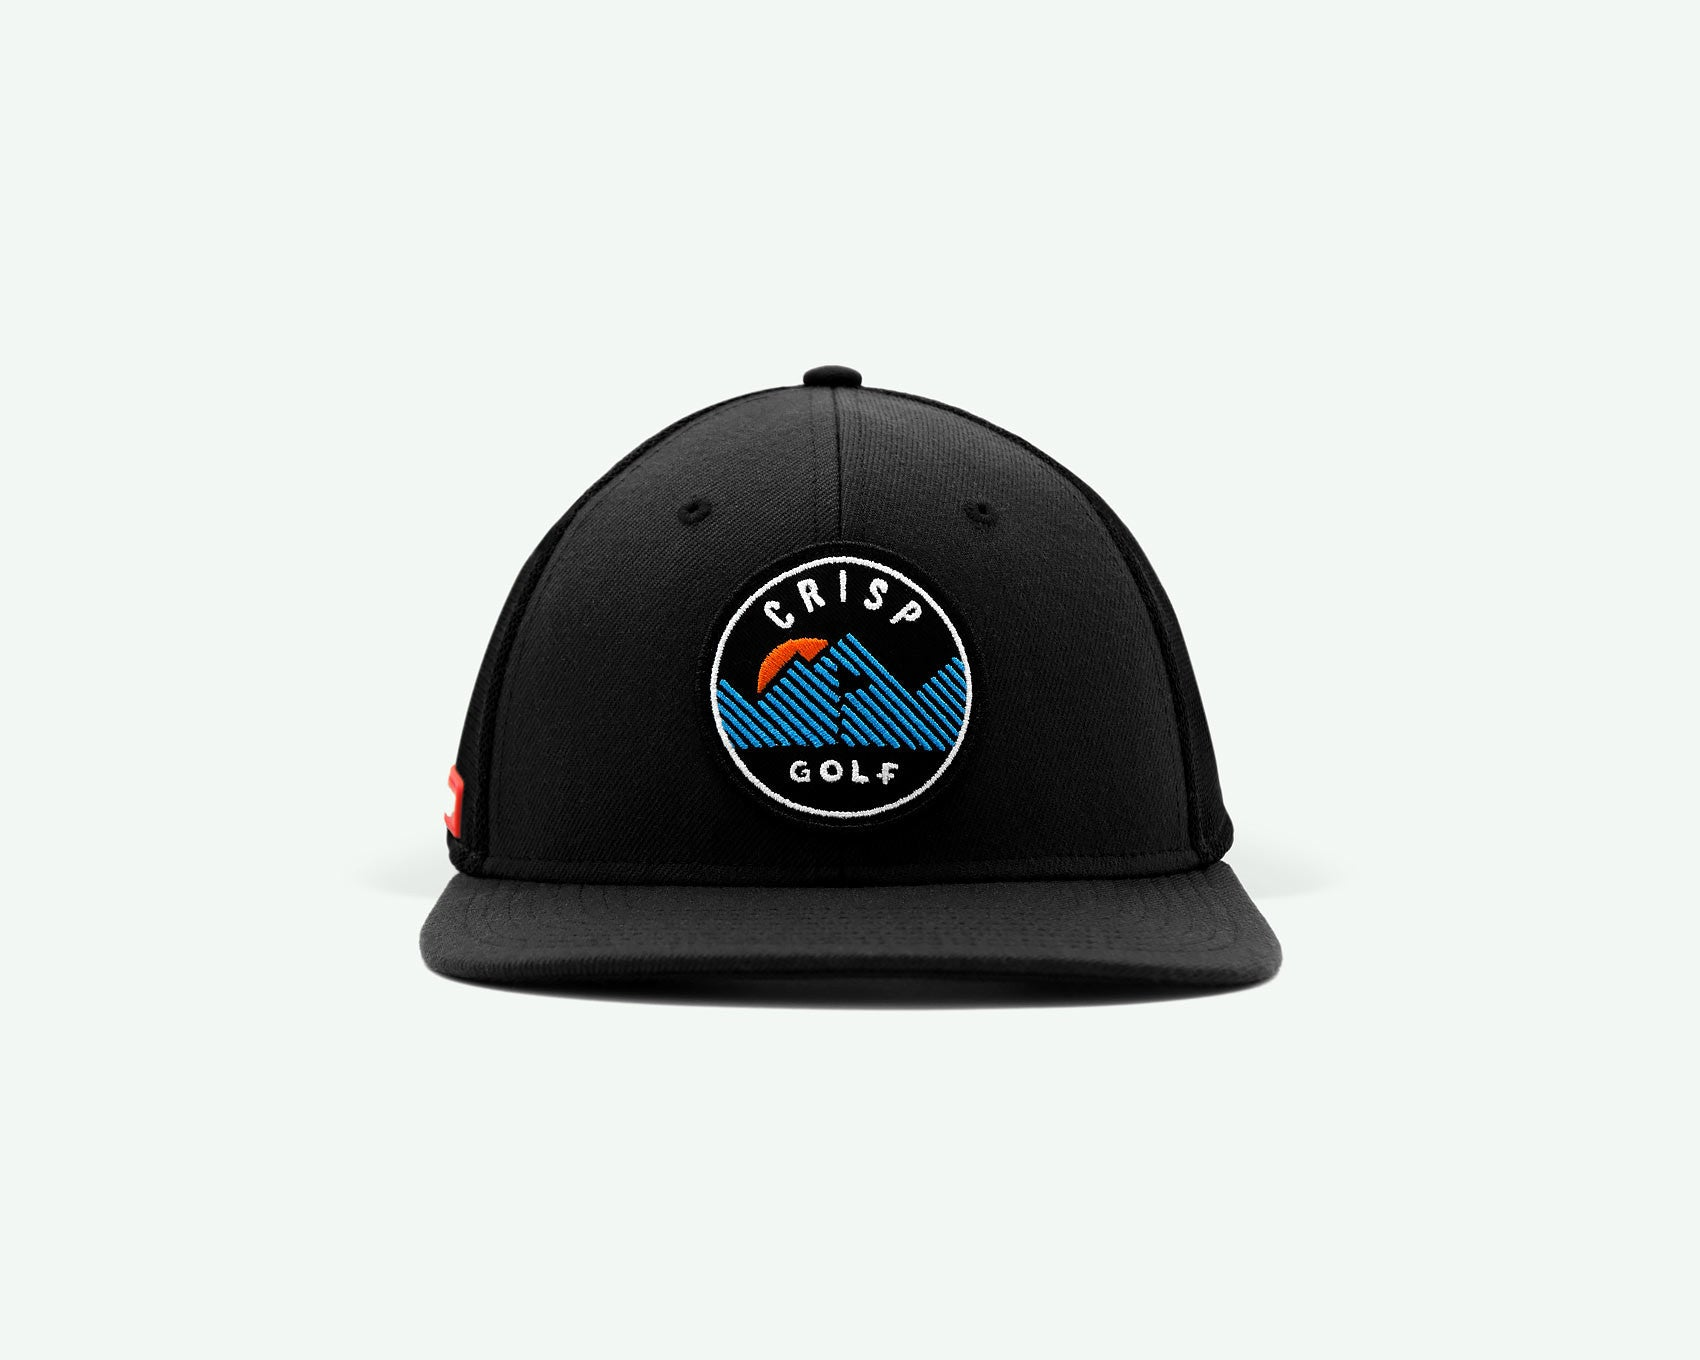 103 series black structured 6-panel golf cap with a wool blend crown, fine mesh side/back panels, a plastic closure and an embroidery patch and mountain logo